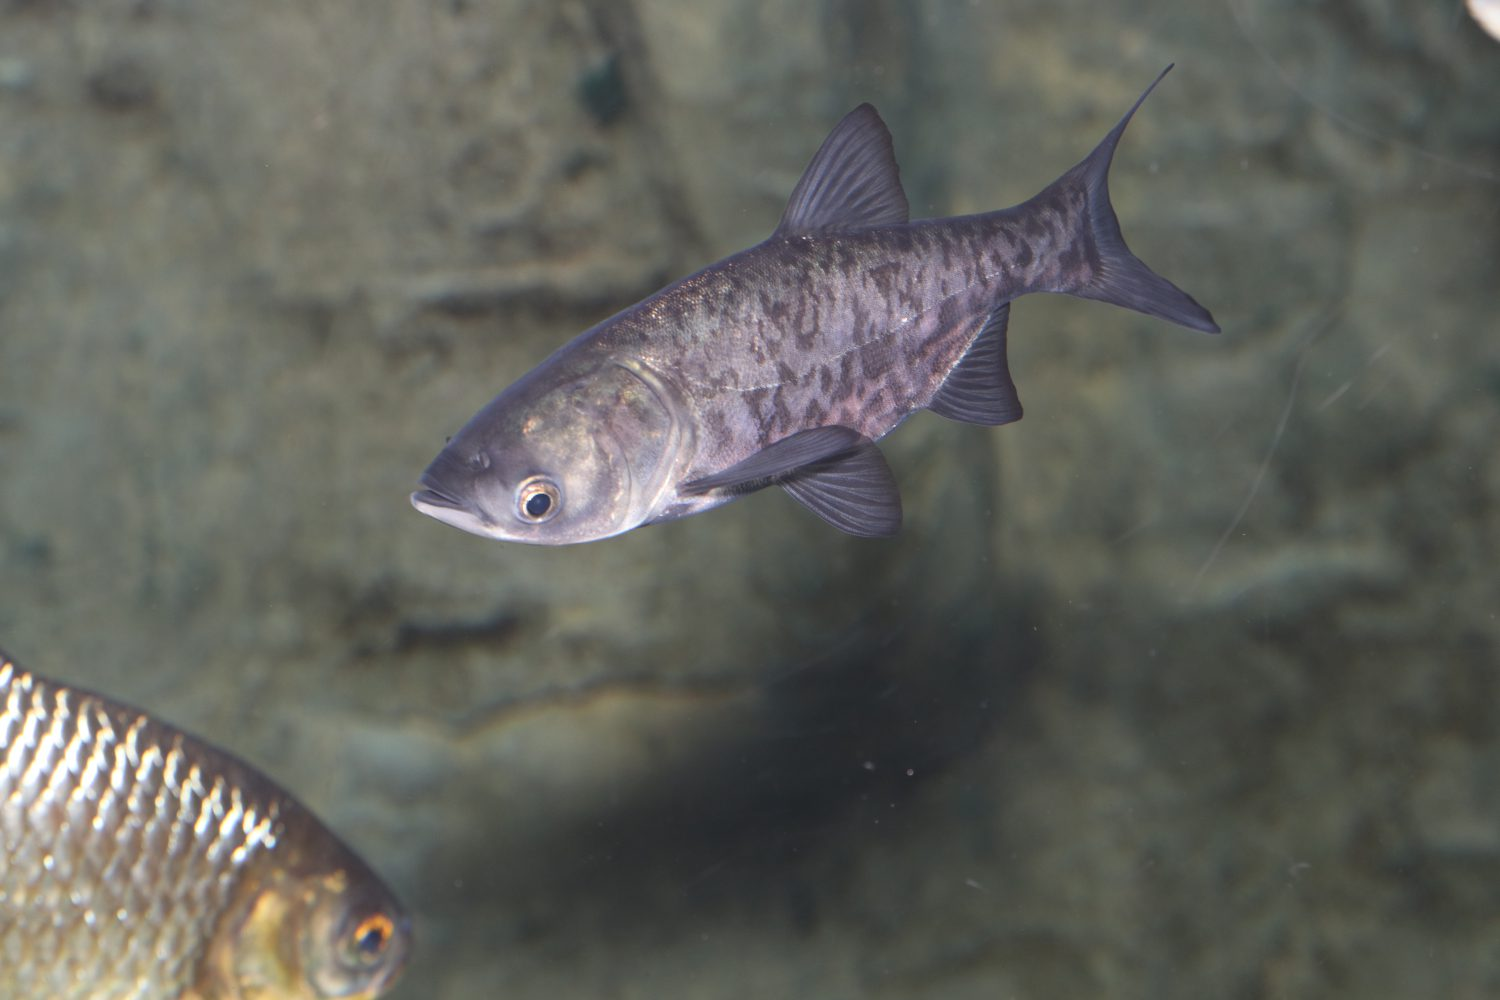 Juvenile Bighead Carp at the Toronto Zoo exhibit